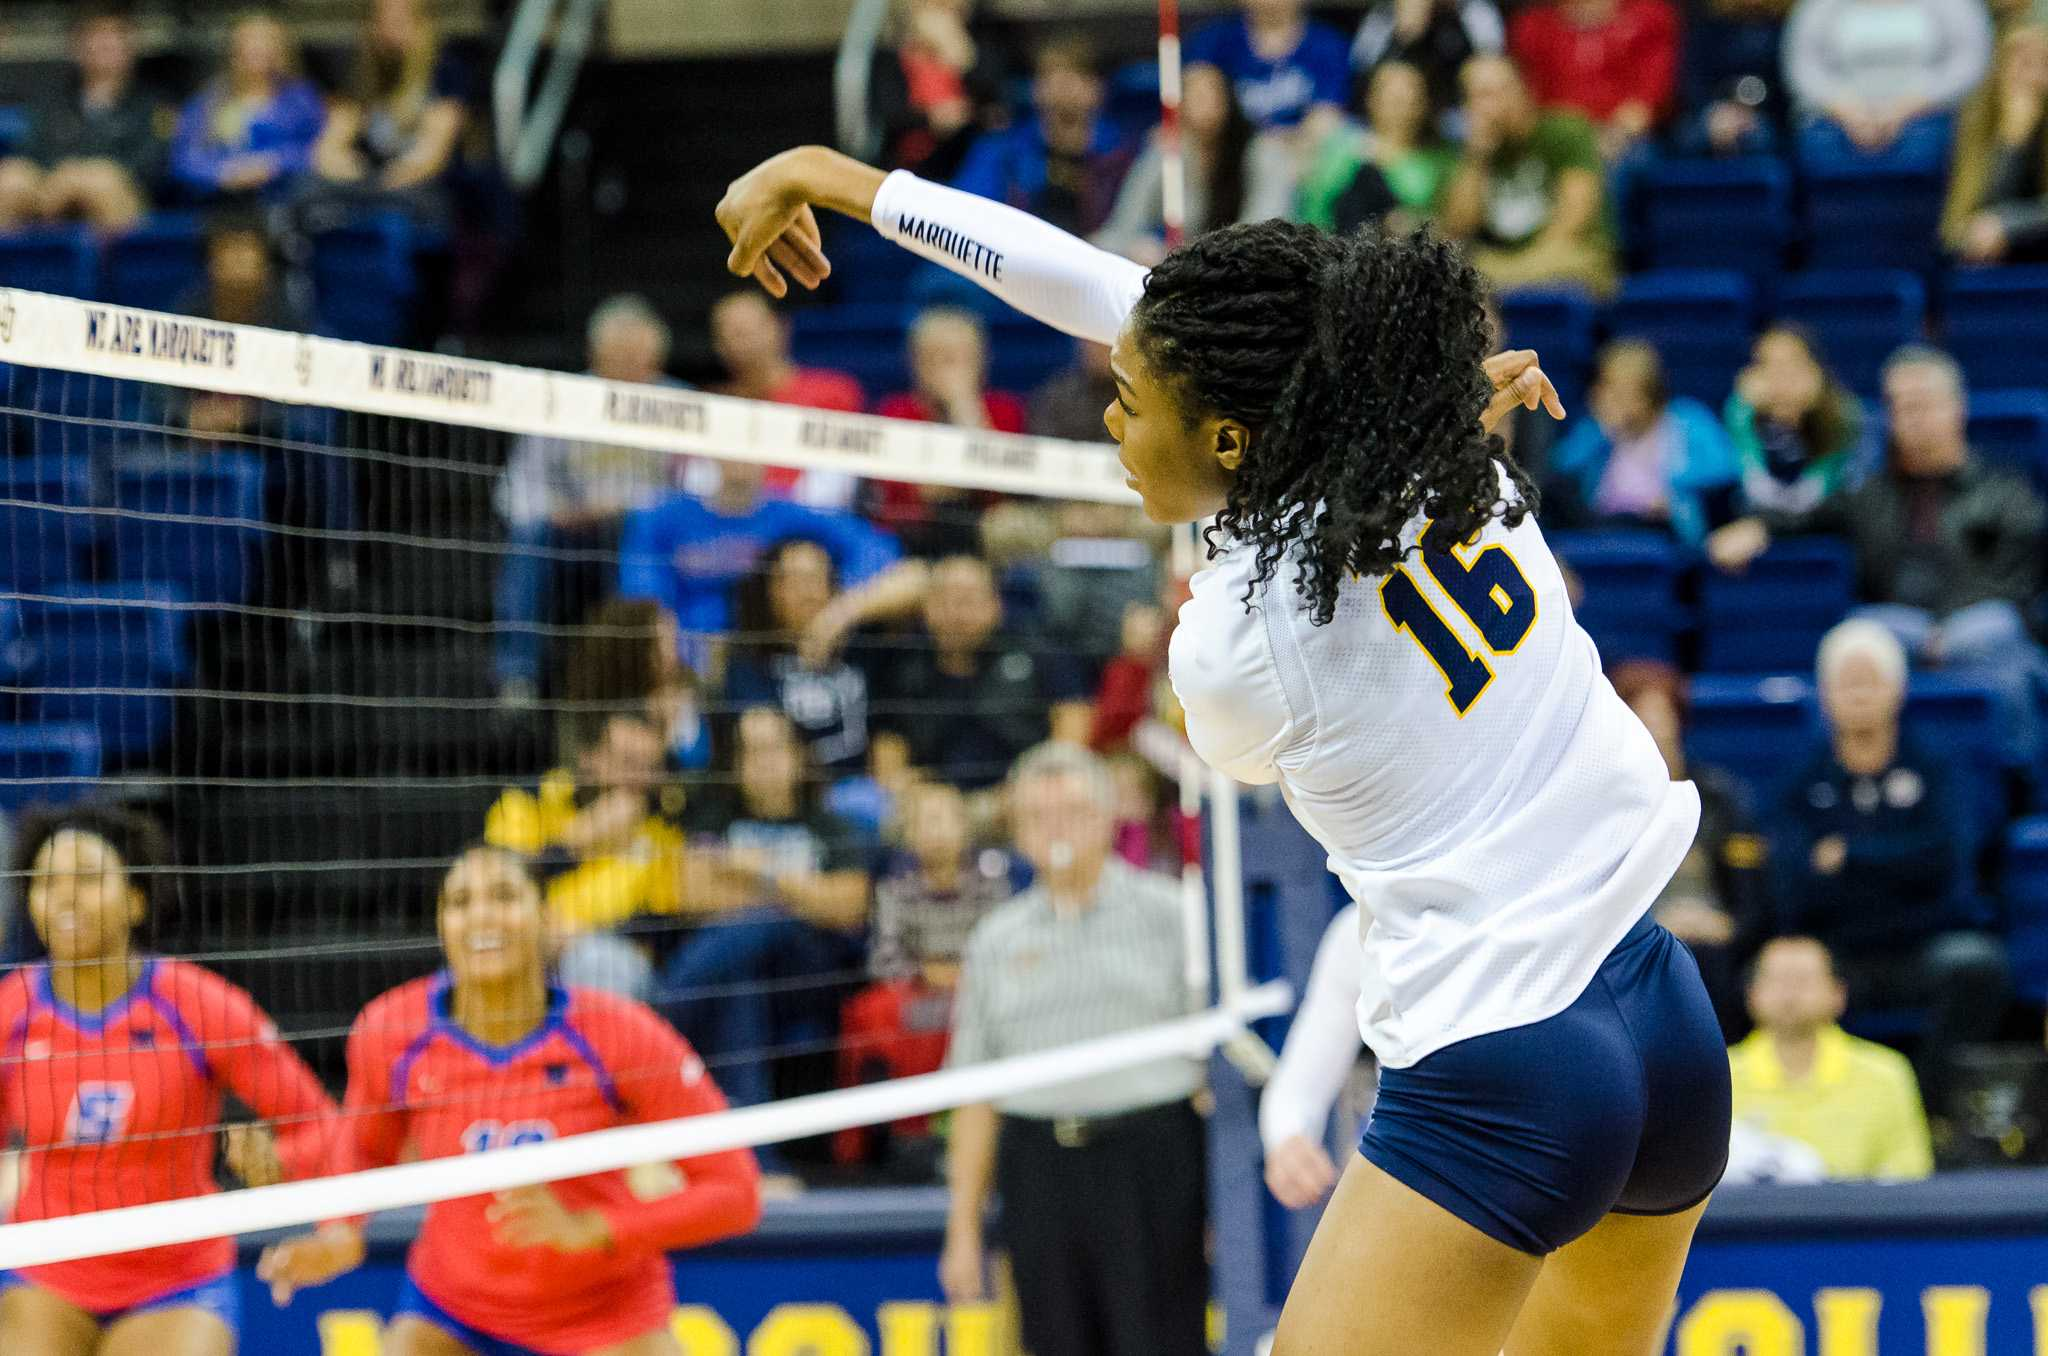 Taylor Louis had 18 kills in the Golden Eagles' final match of the season.